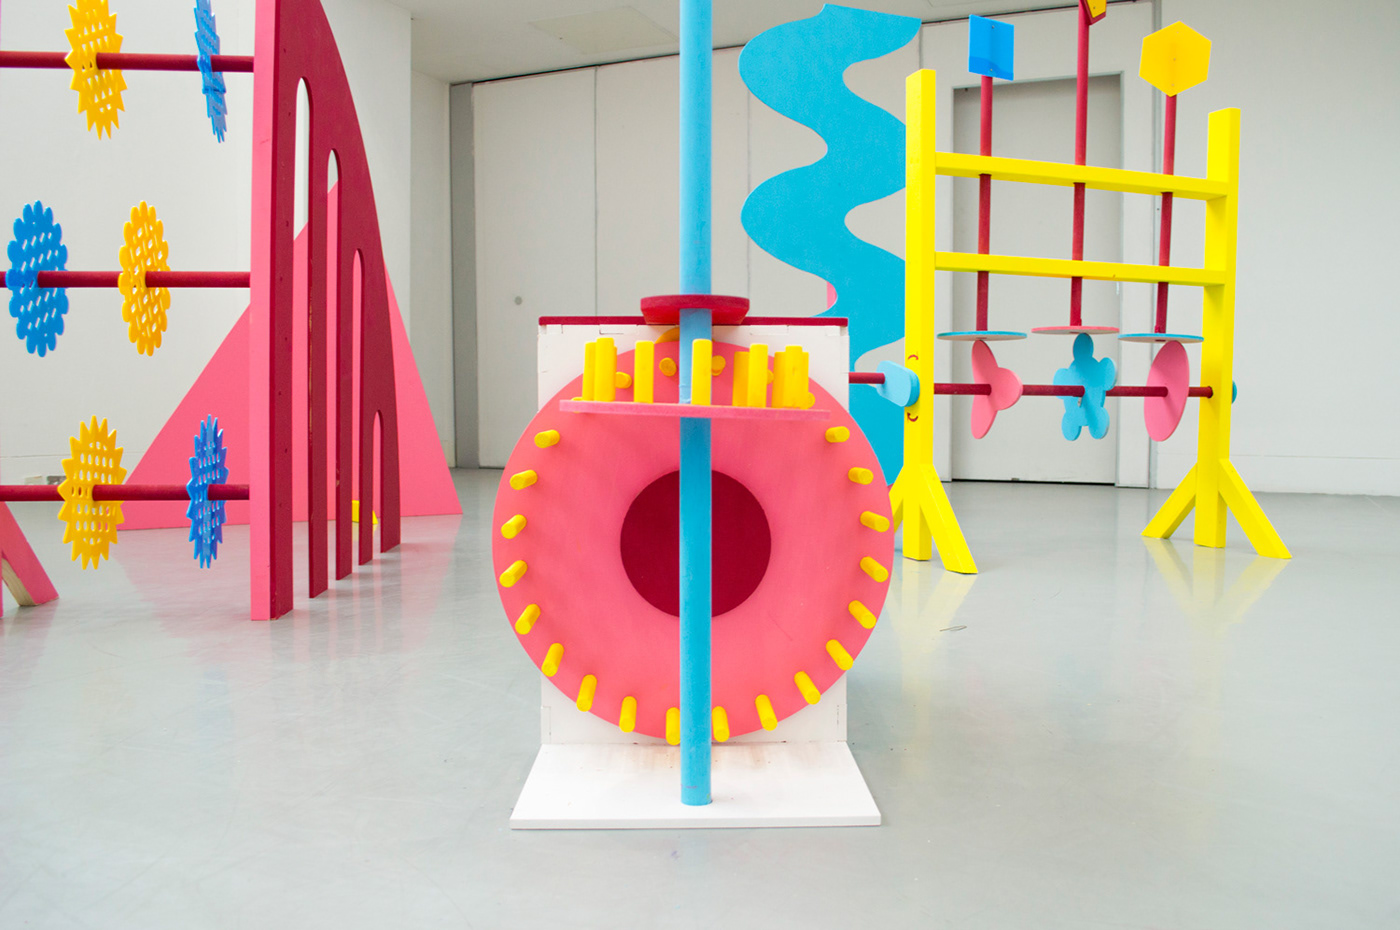 sculpture interactive installation Exhibition  woodwork cnc laser cutting colour play